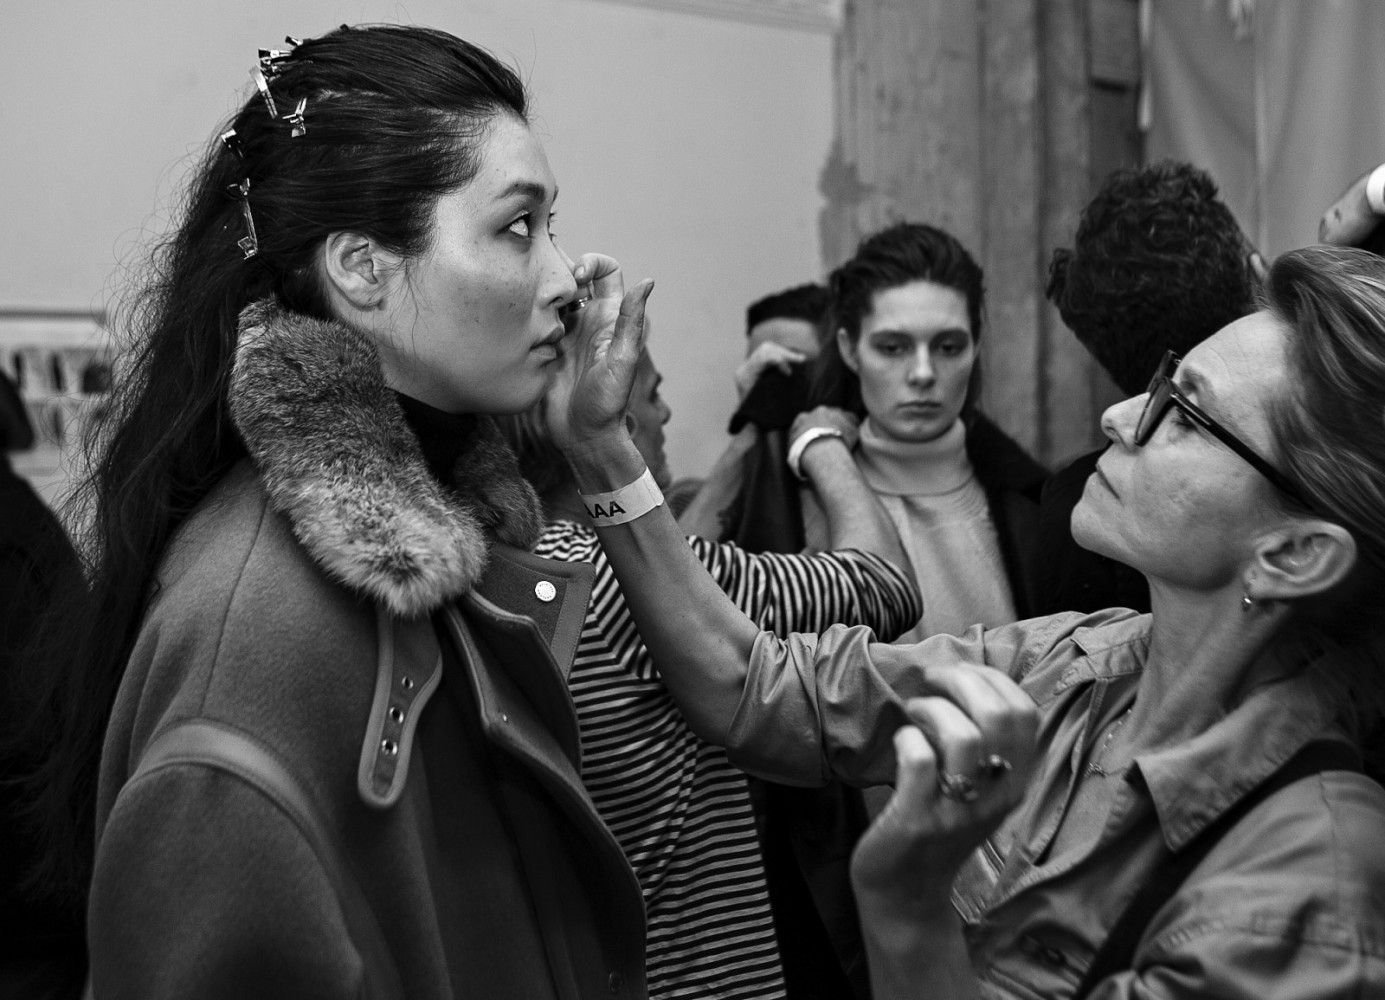 backstage-models-Belstaff-FW16-How-to-contour-now-top-London-modelling-agency-IMM